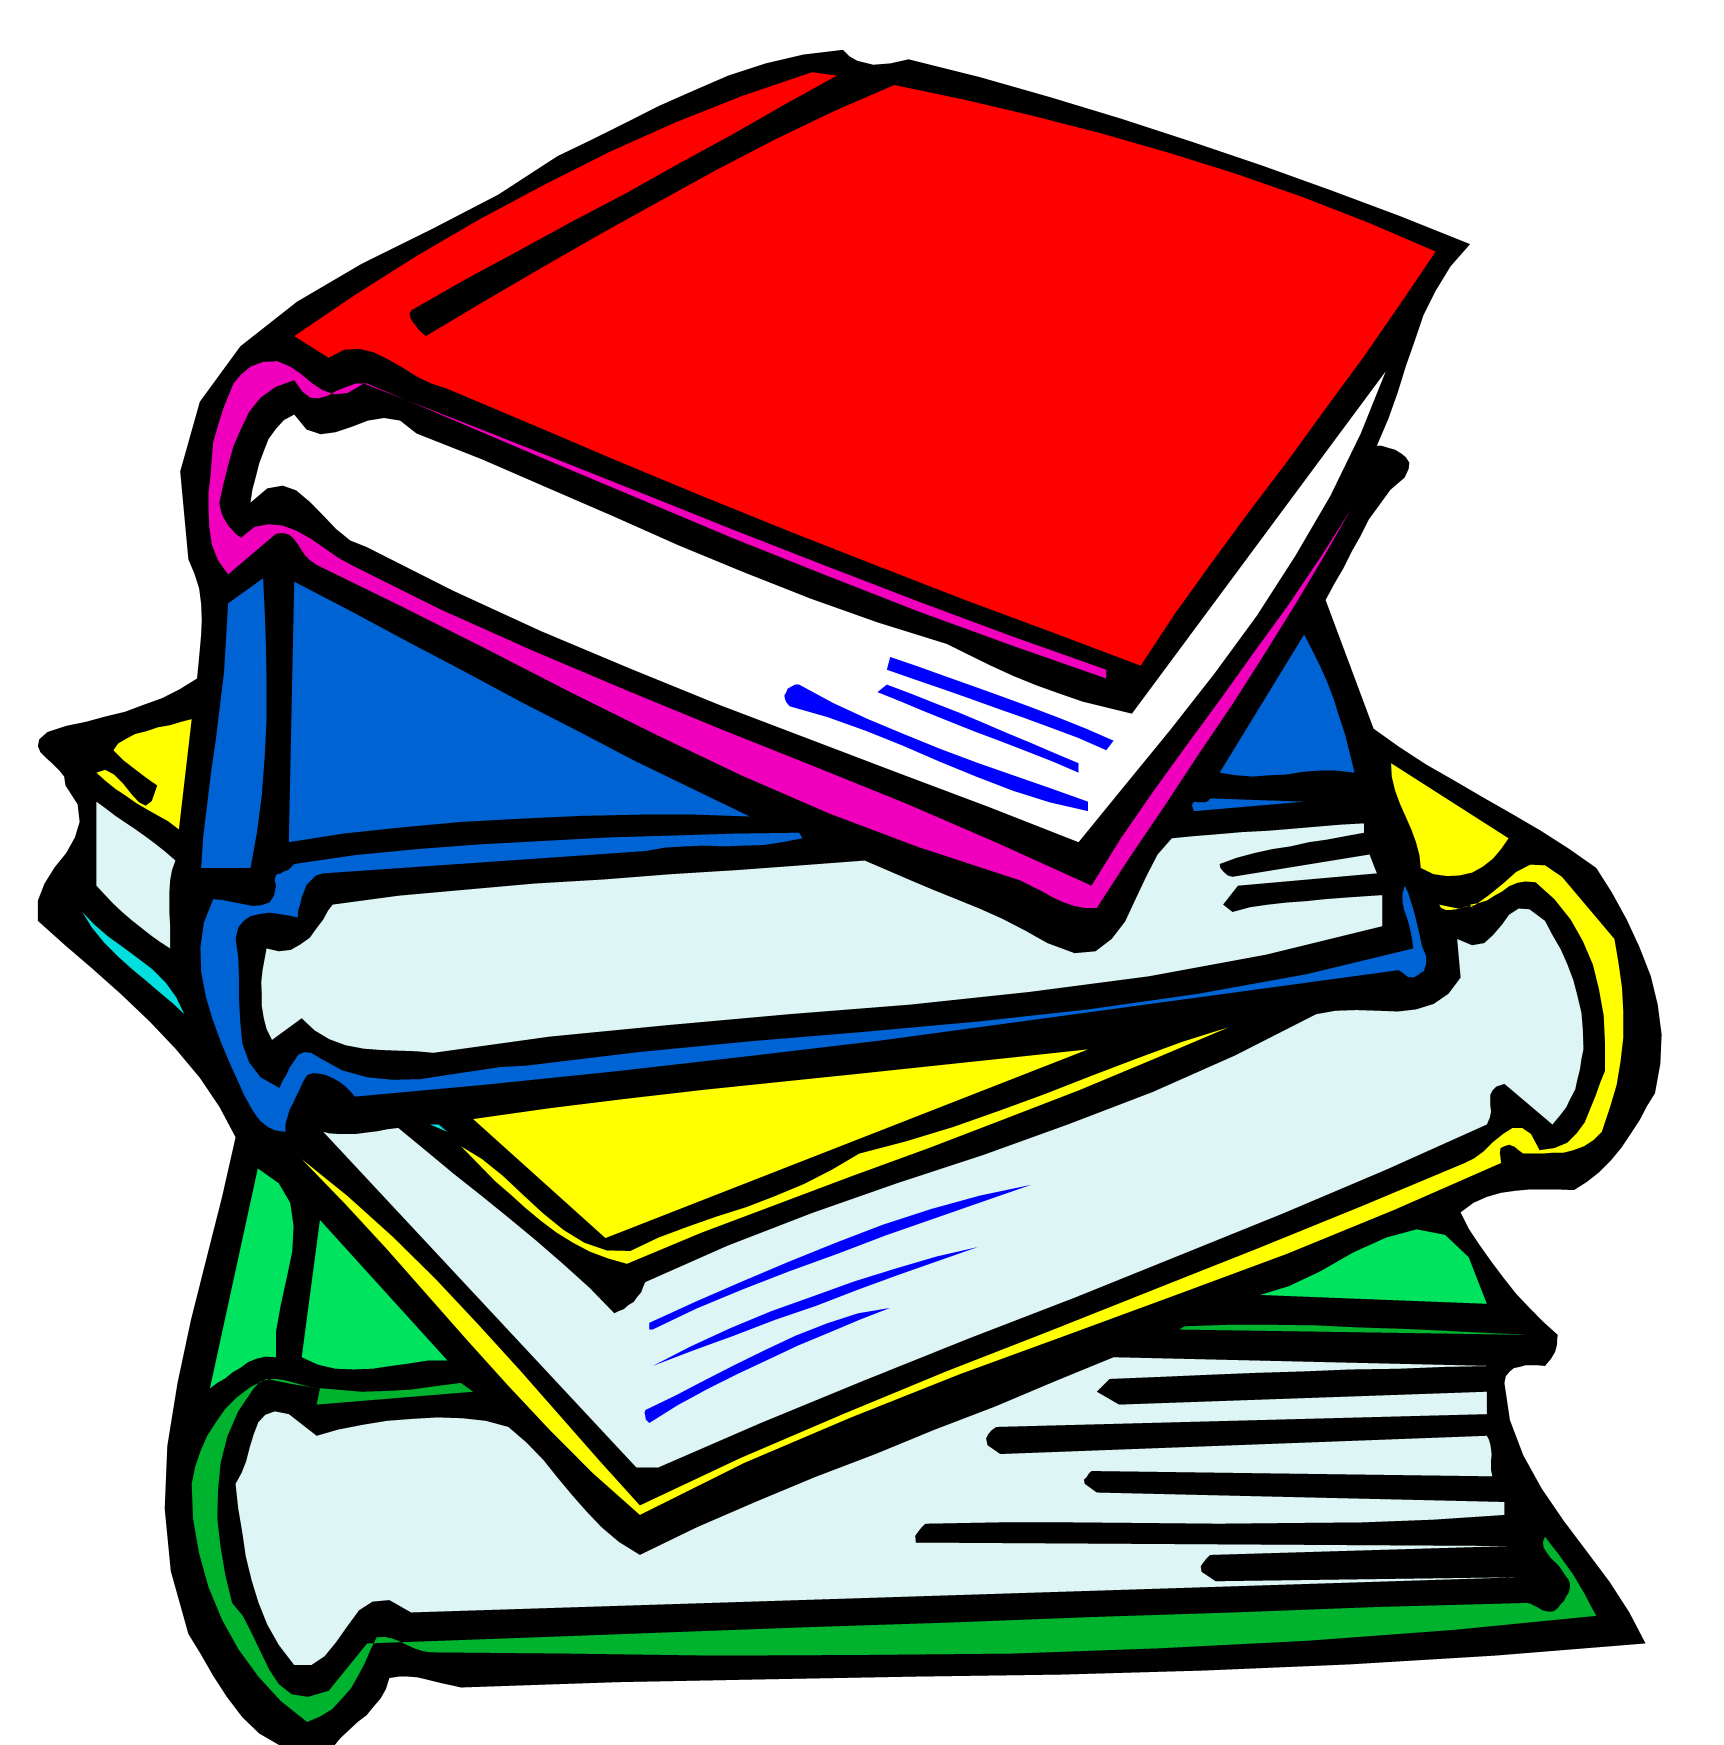 book fair clipart at getdrawings com free for personal use book rh getdrawings com free clipart images of books